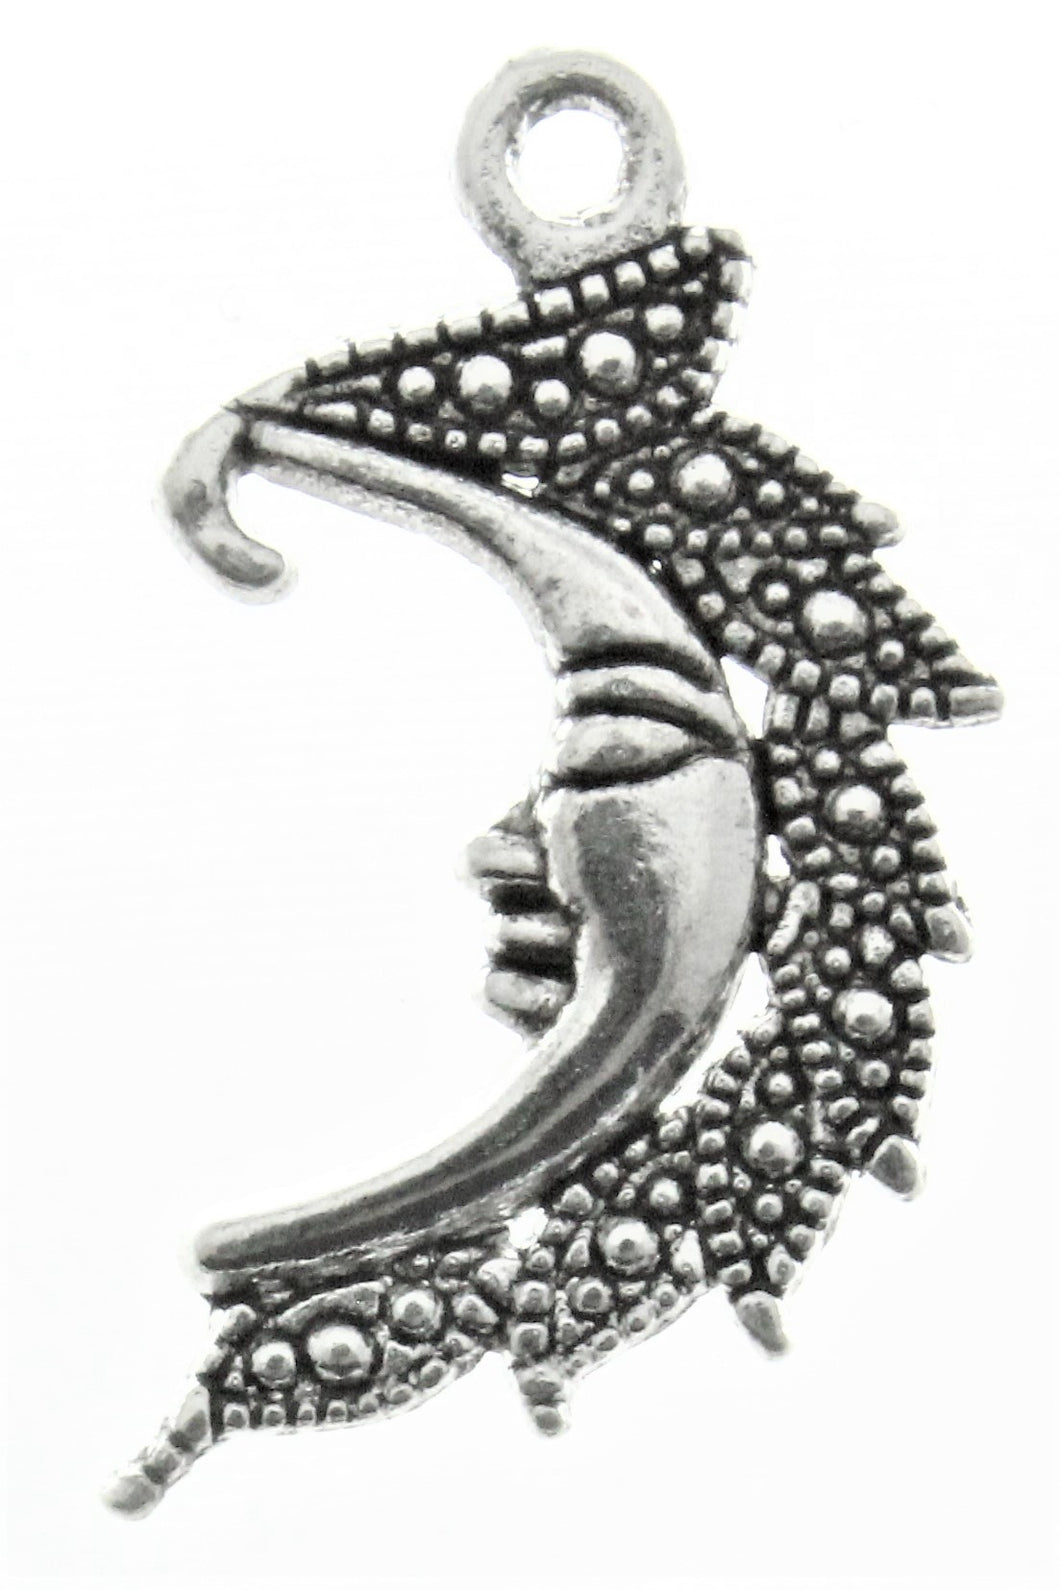 AVBeads Celestial Moon Charms Silver 25mm x 15mm Metal Charms 100pcs